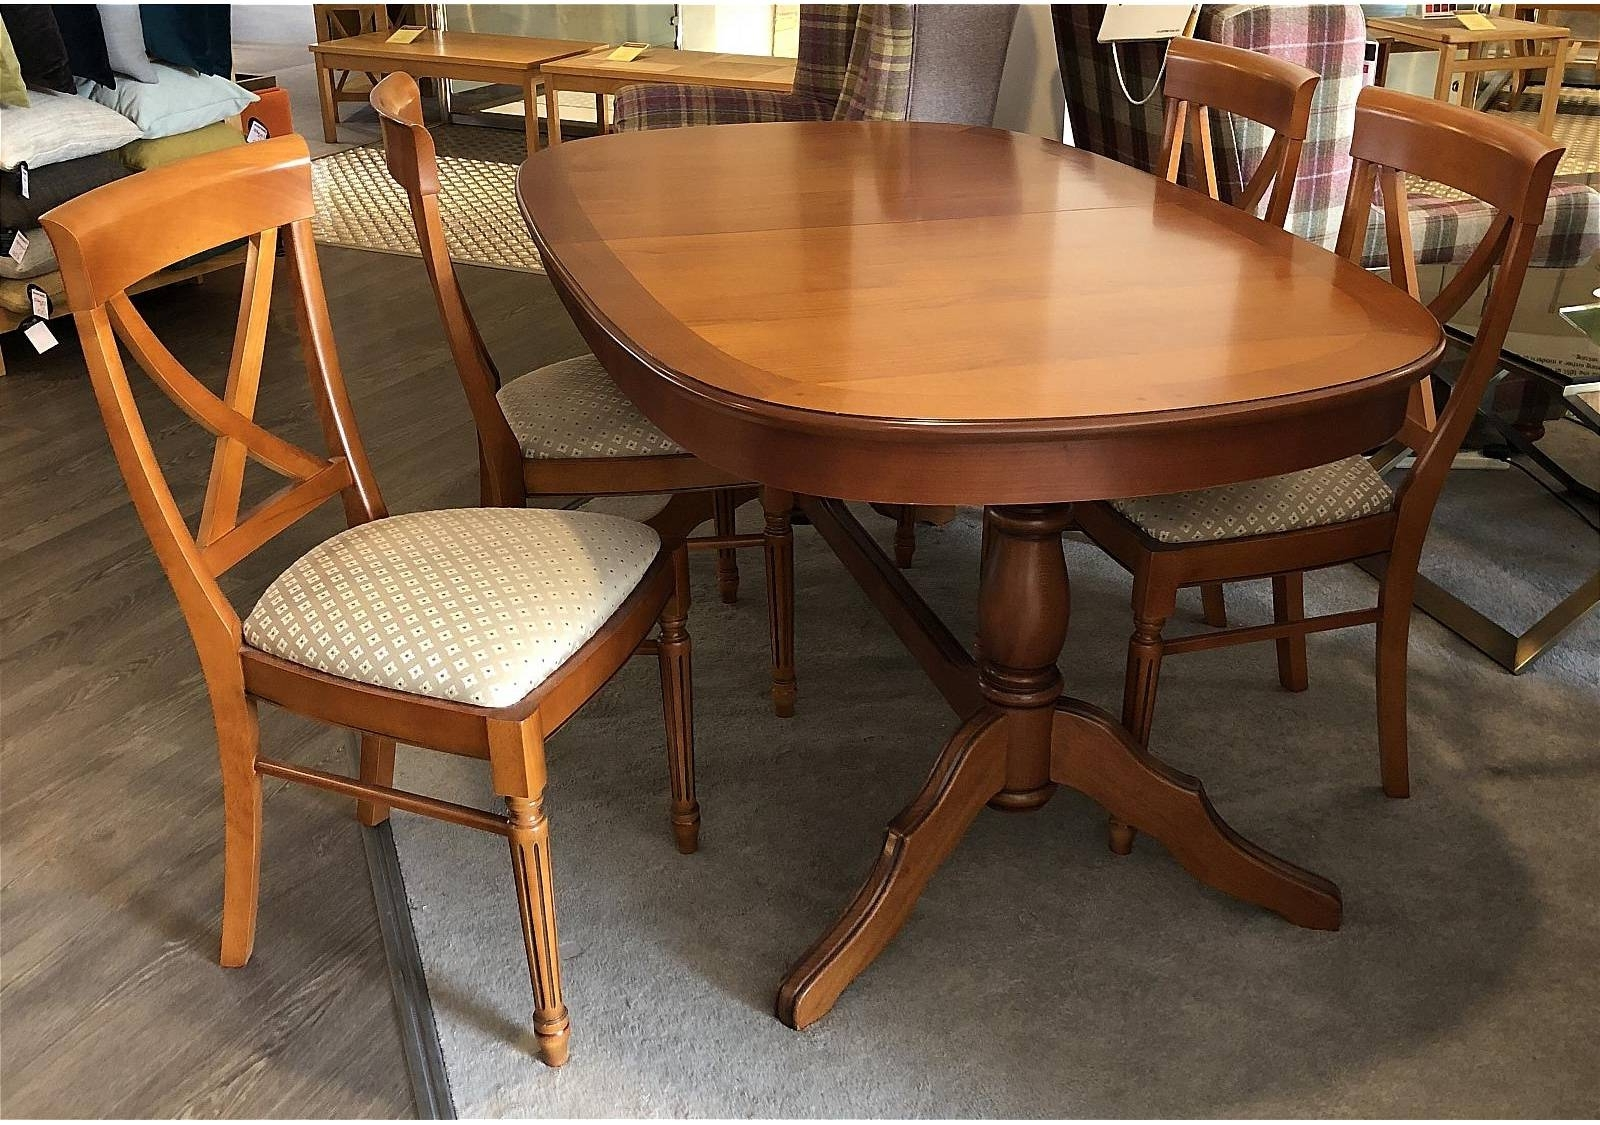 Vale Furnishers Cork Medium Oval Extending Dining Table And 4 Cross In Well Known Cork Dining Tables (View 23 of 25)